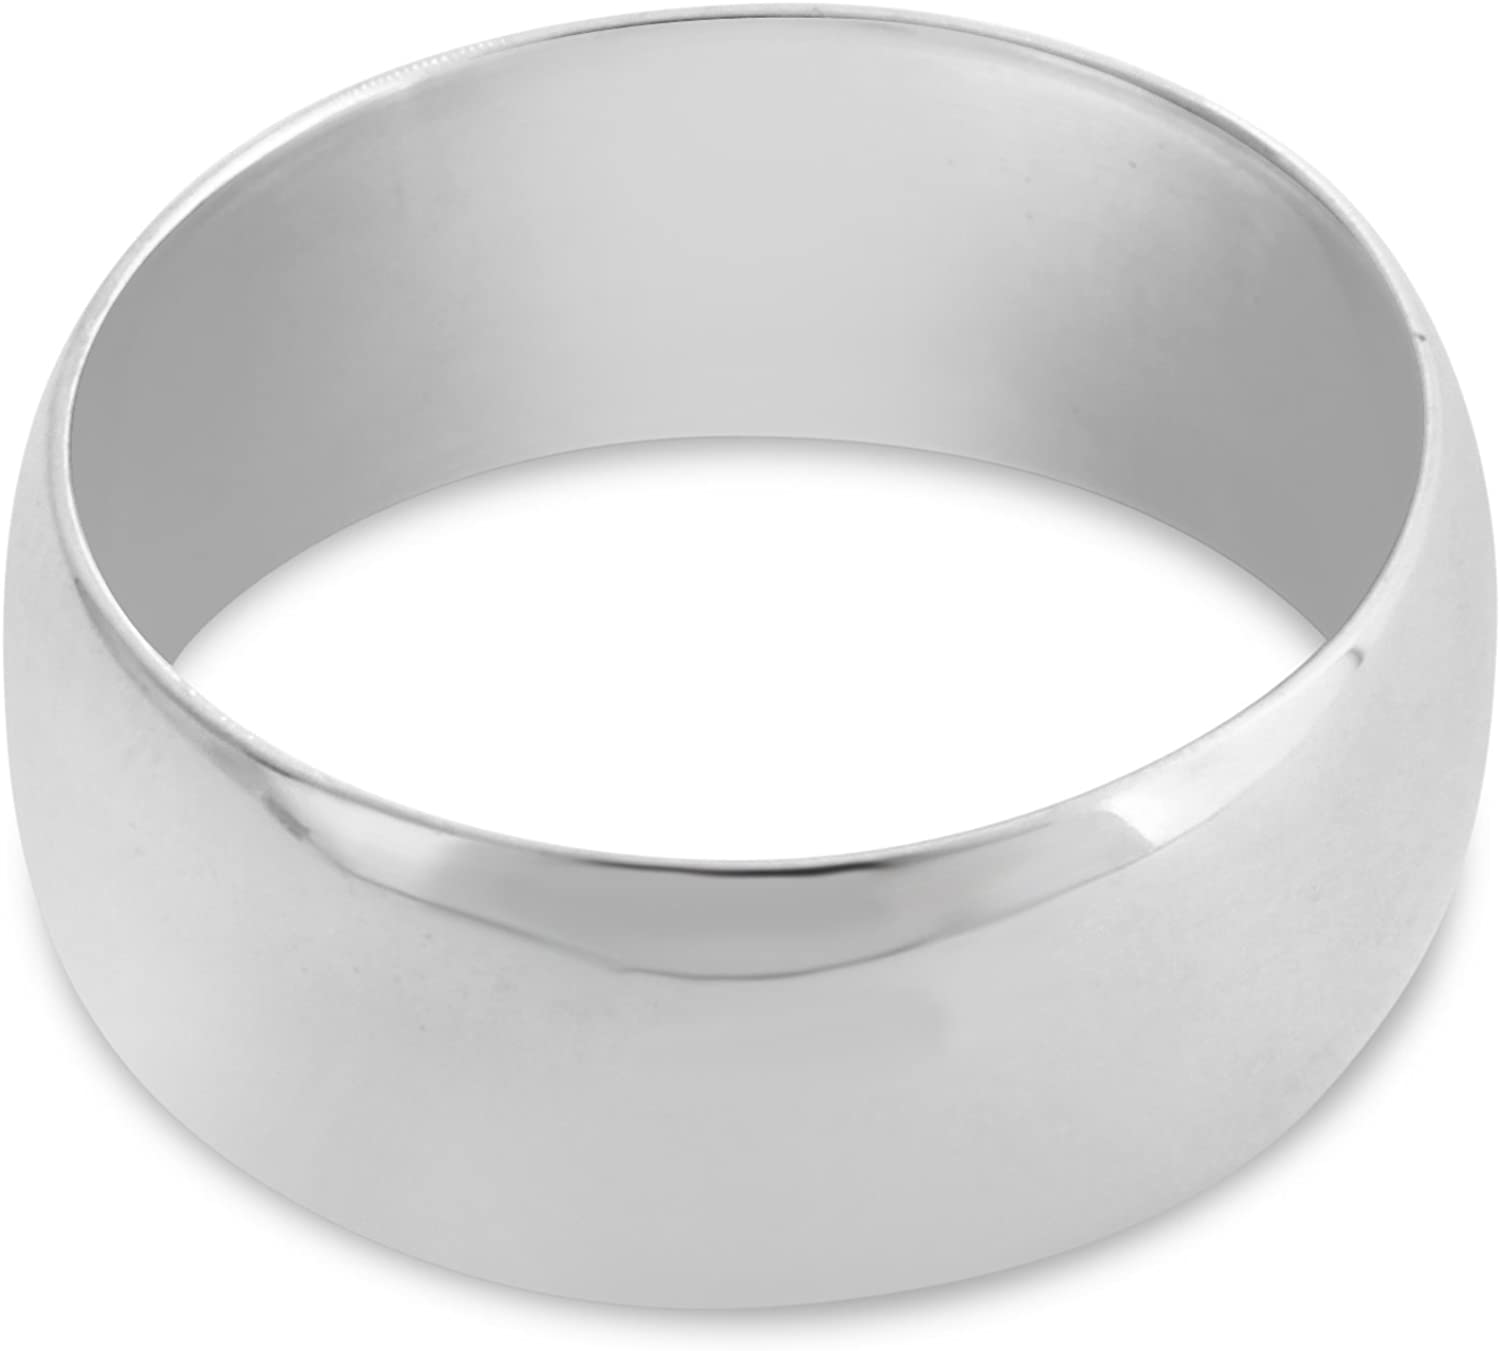 Azaggi 925 Sterling Silver Ranking TOP19 Wedding Financial sales sale Band Ring 6 8mm